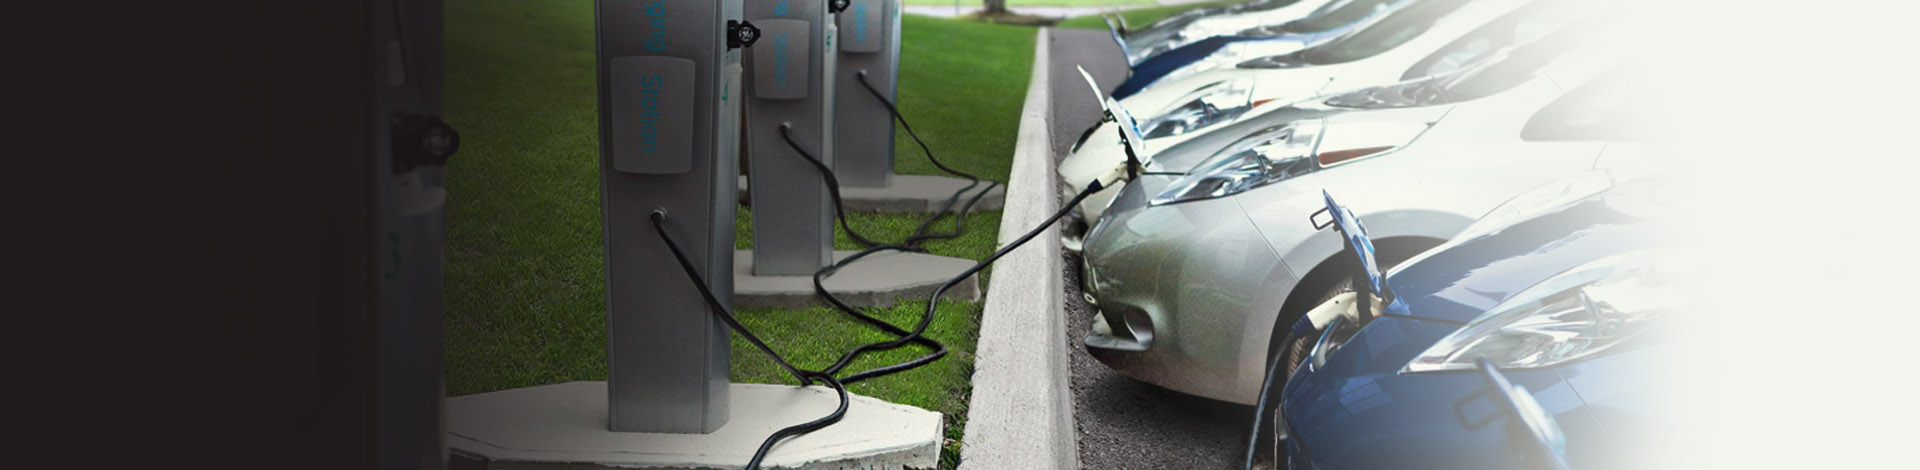 MOVING FORWARD WITH EV CHARGING